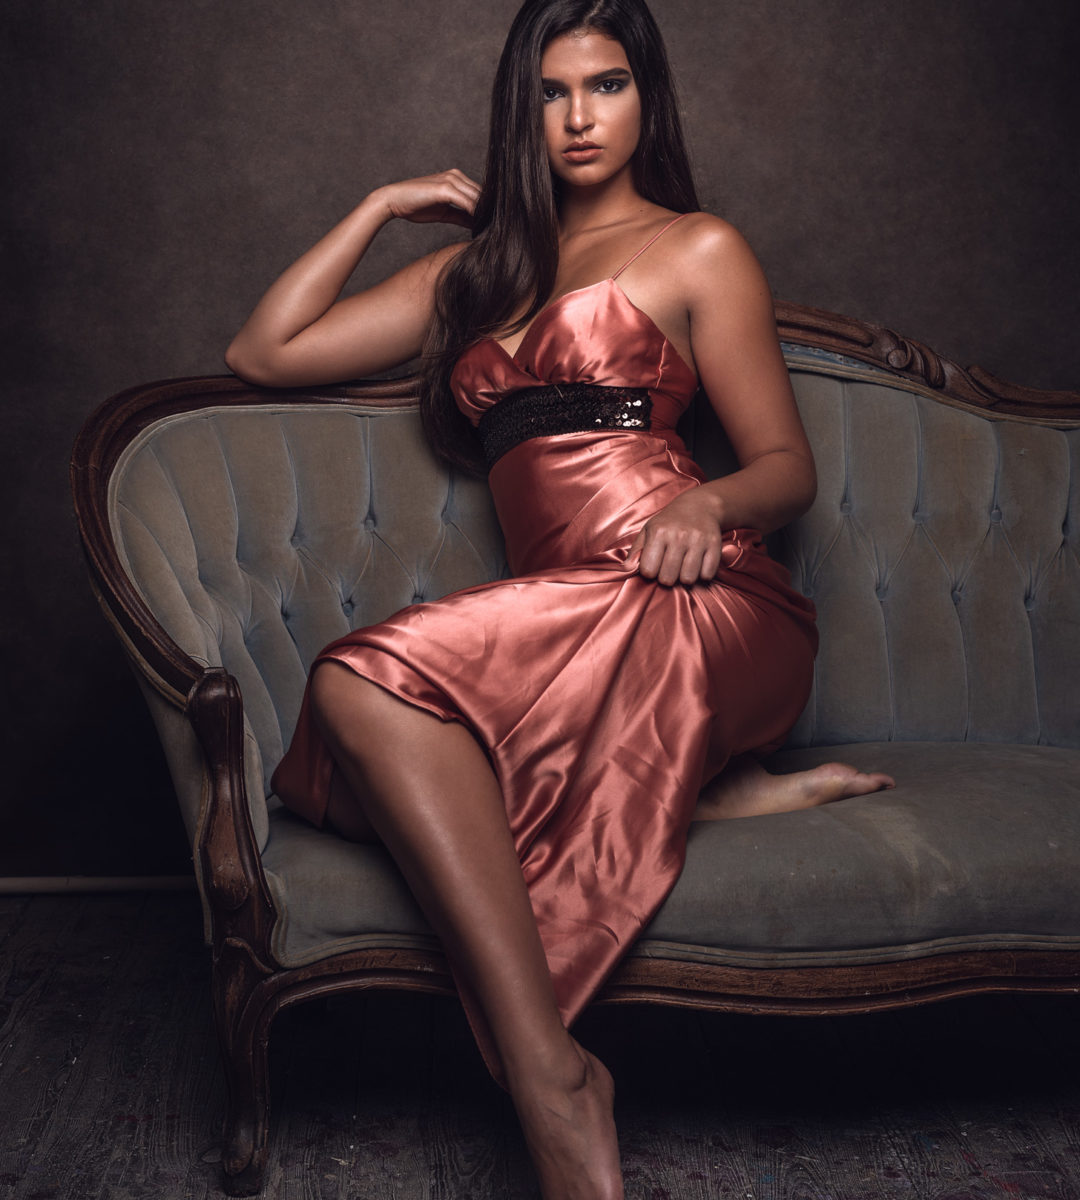 Photography Session With Model In Rose Satin Dress